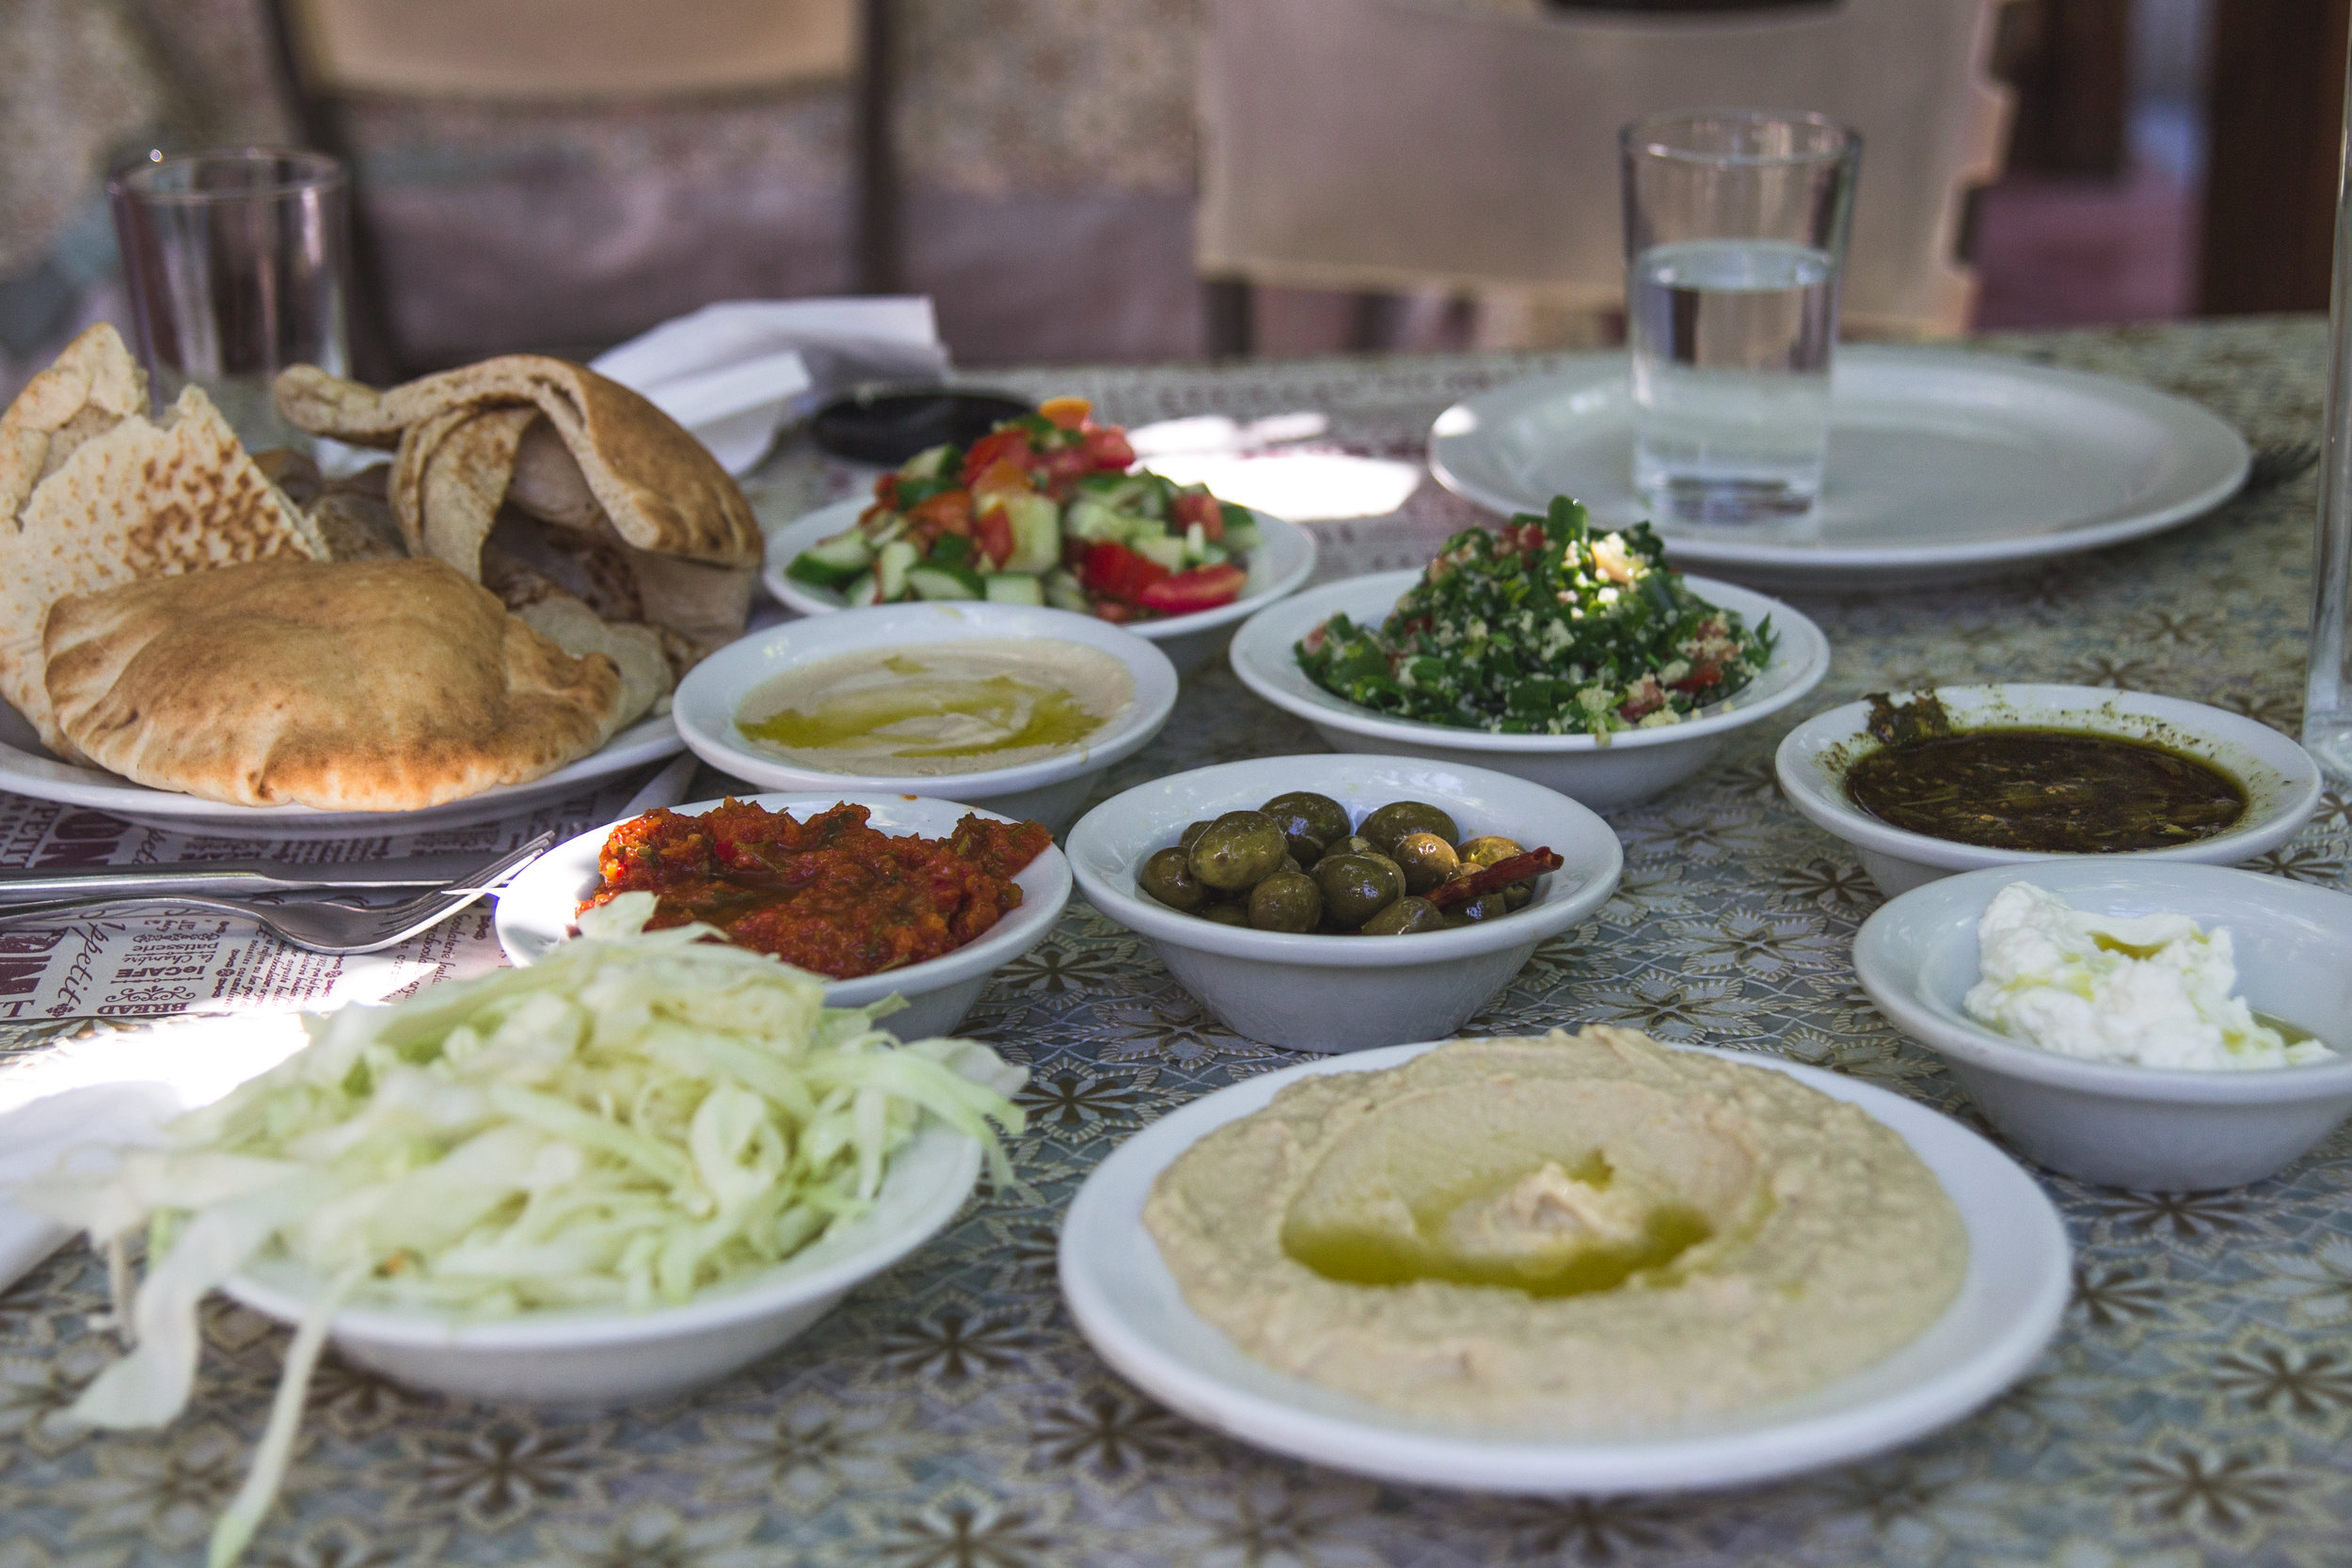 Amazing Israeli/Druze food.  The owners of the restaurant were wearing traditional clothing, and the meal was too delicious!